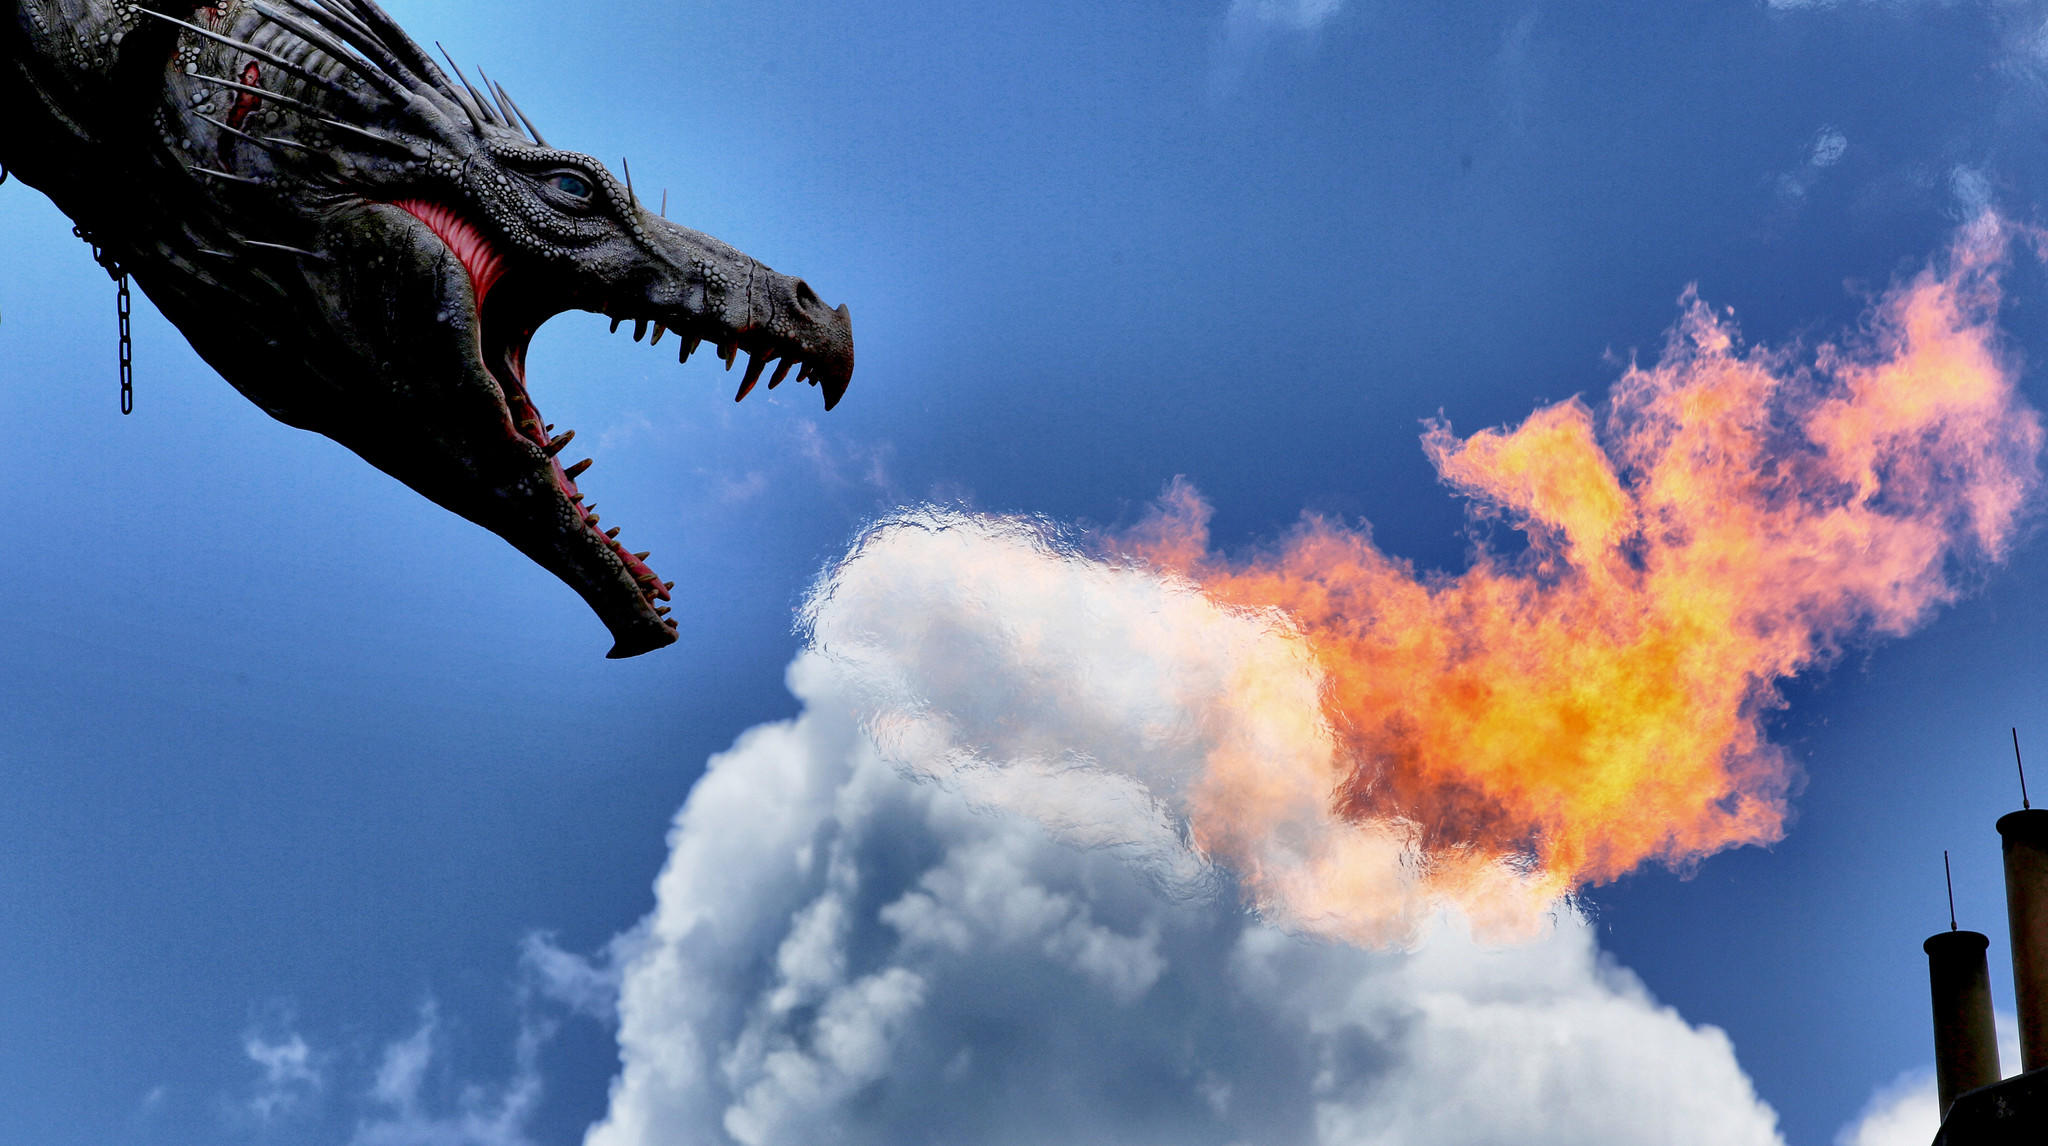 The dragon spews fire during the media preview at the Wizarding World of Harry Potter - Diagon Alley - Thursday, June 19, 2014, at Universal Studios Florida in Orlando. (Joe Burbank/Orlando Sentinel) B583808825Z.1